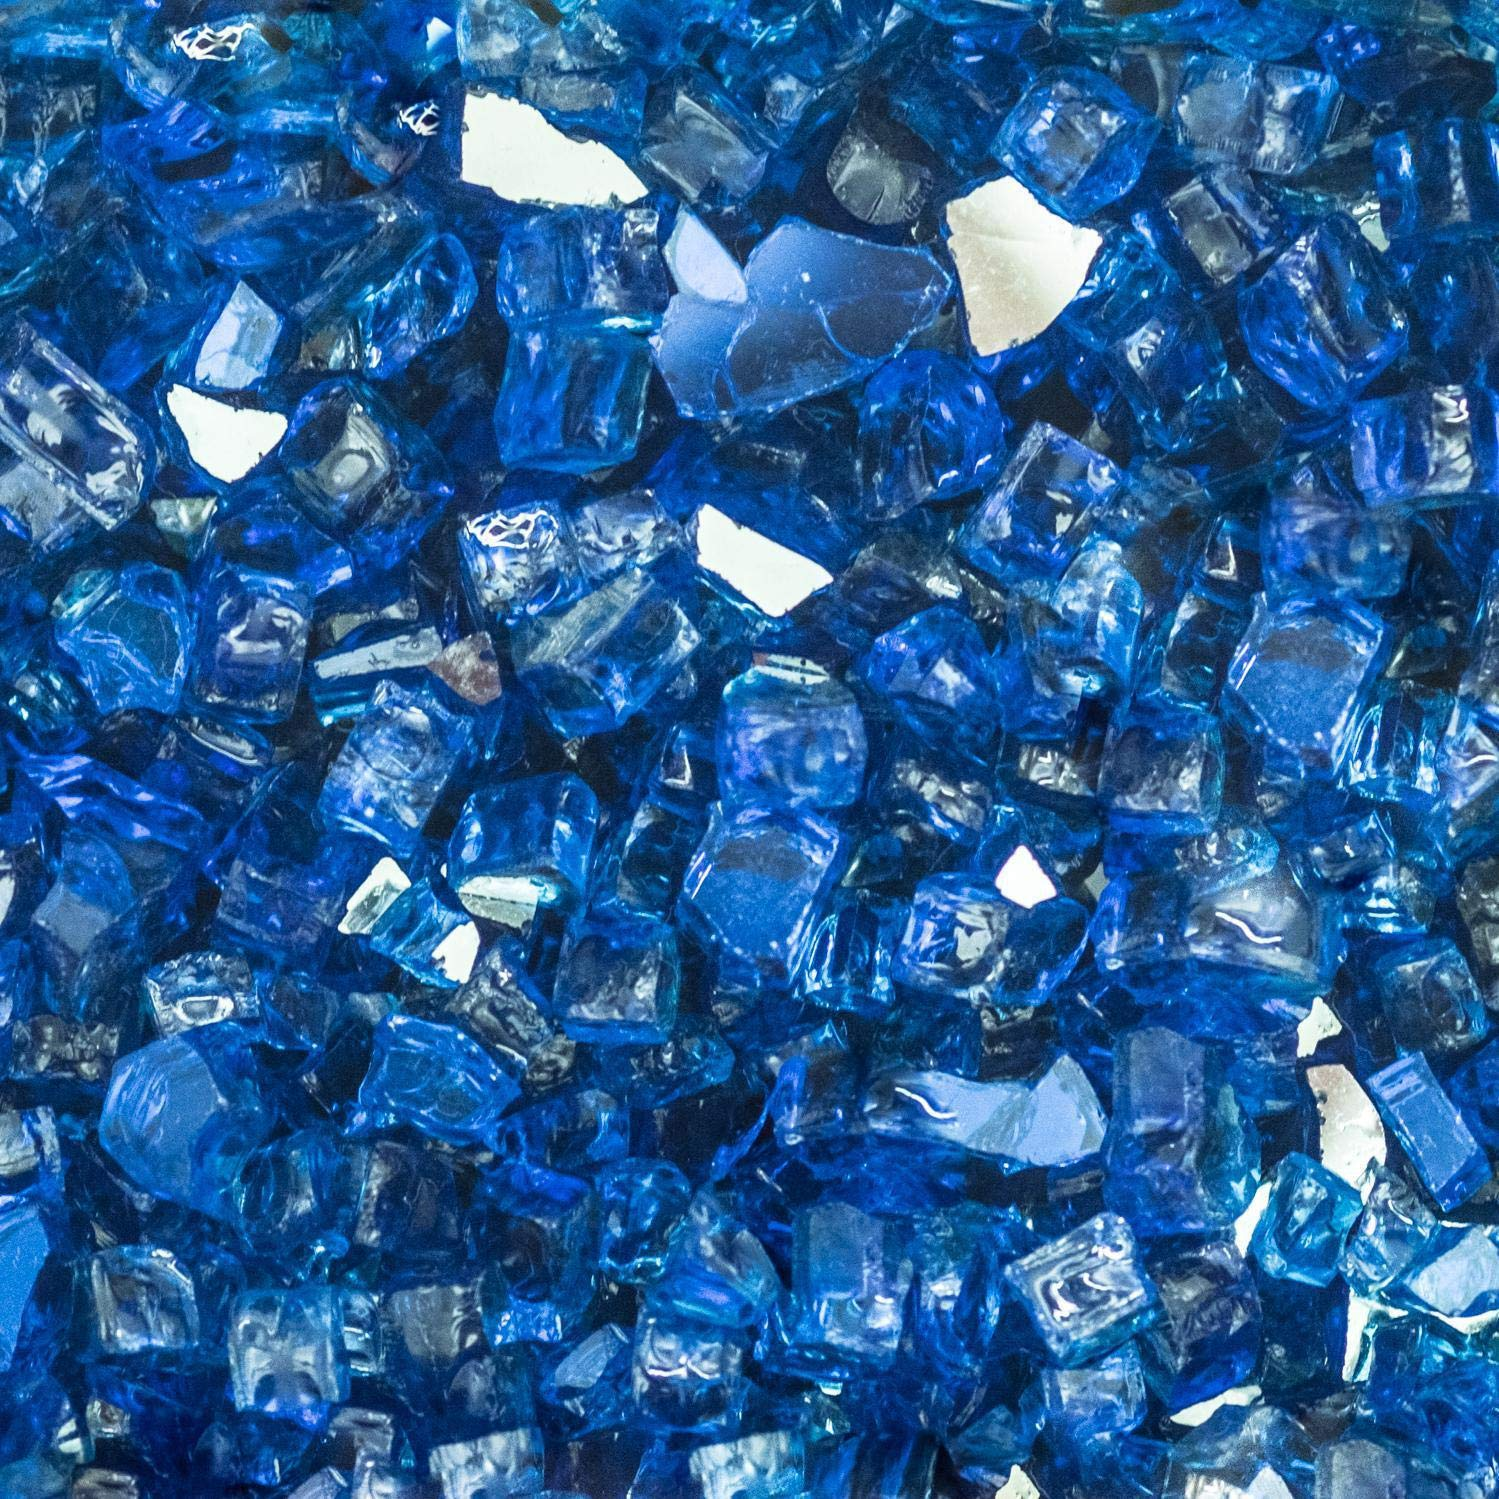 Lakeview Outdoor Designs 1/2-Inch Blue-Jay Reflective Fire Glass - 20 Pounds by Lakeview Outdoor Designs